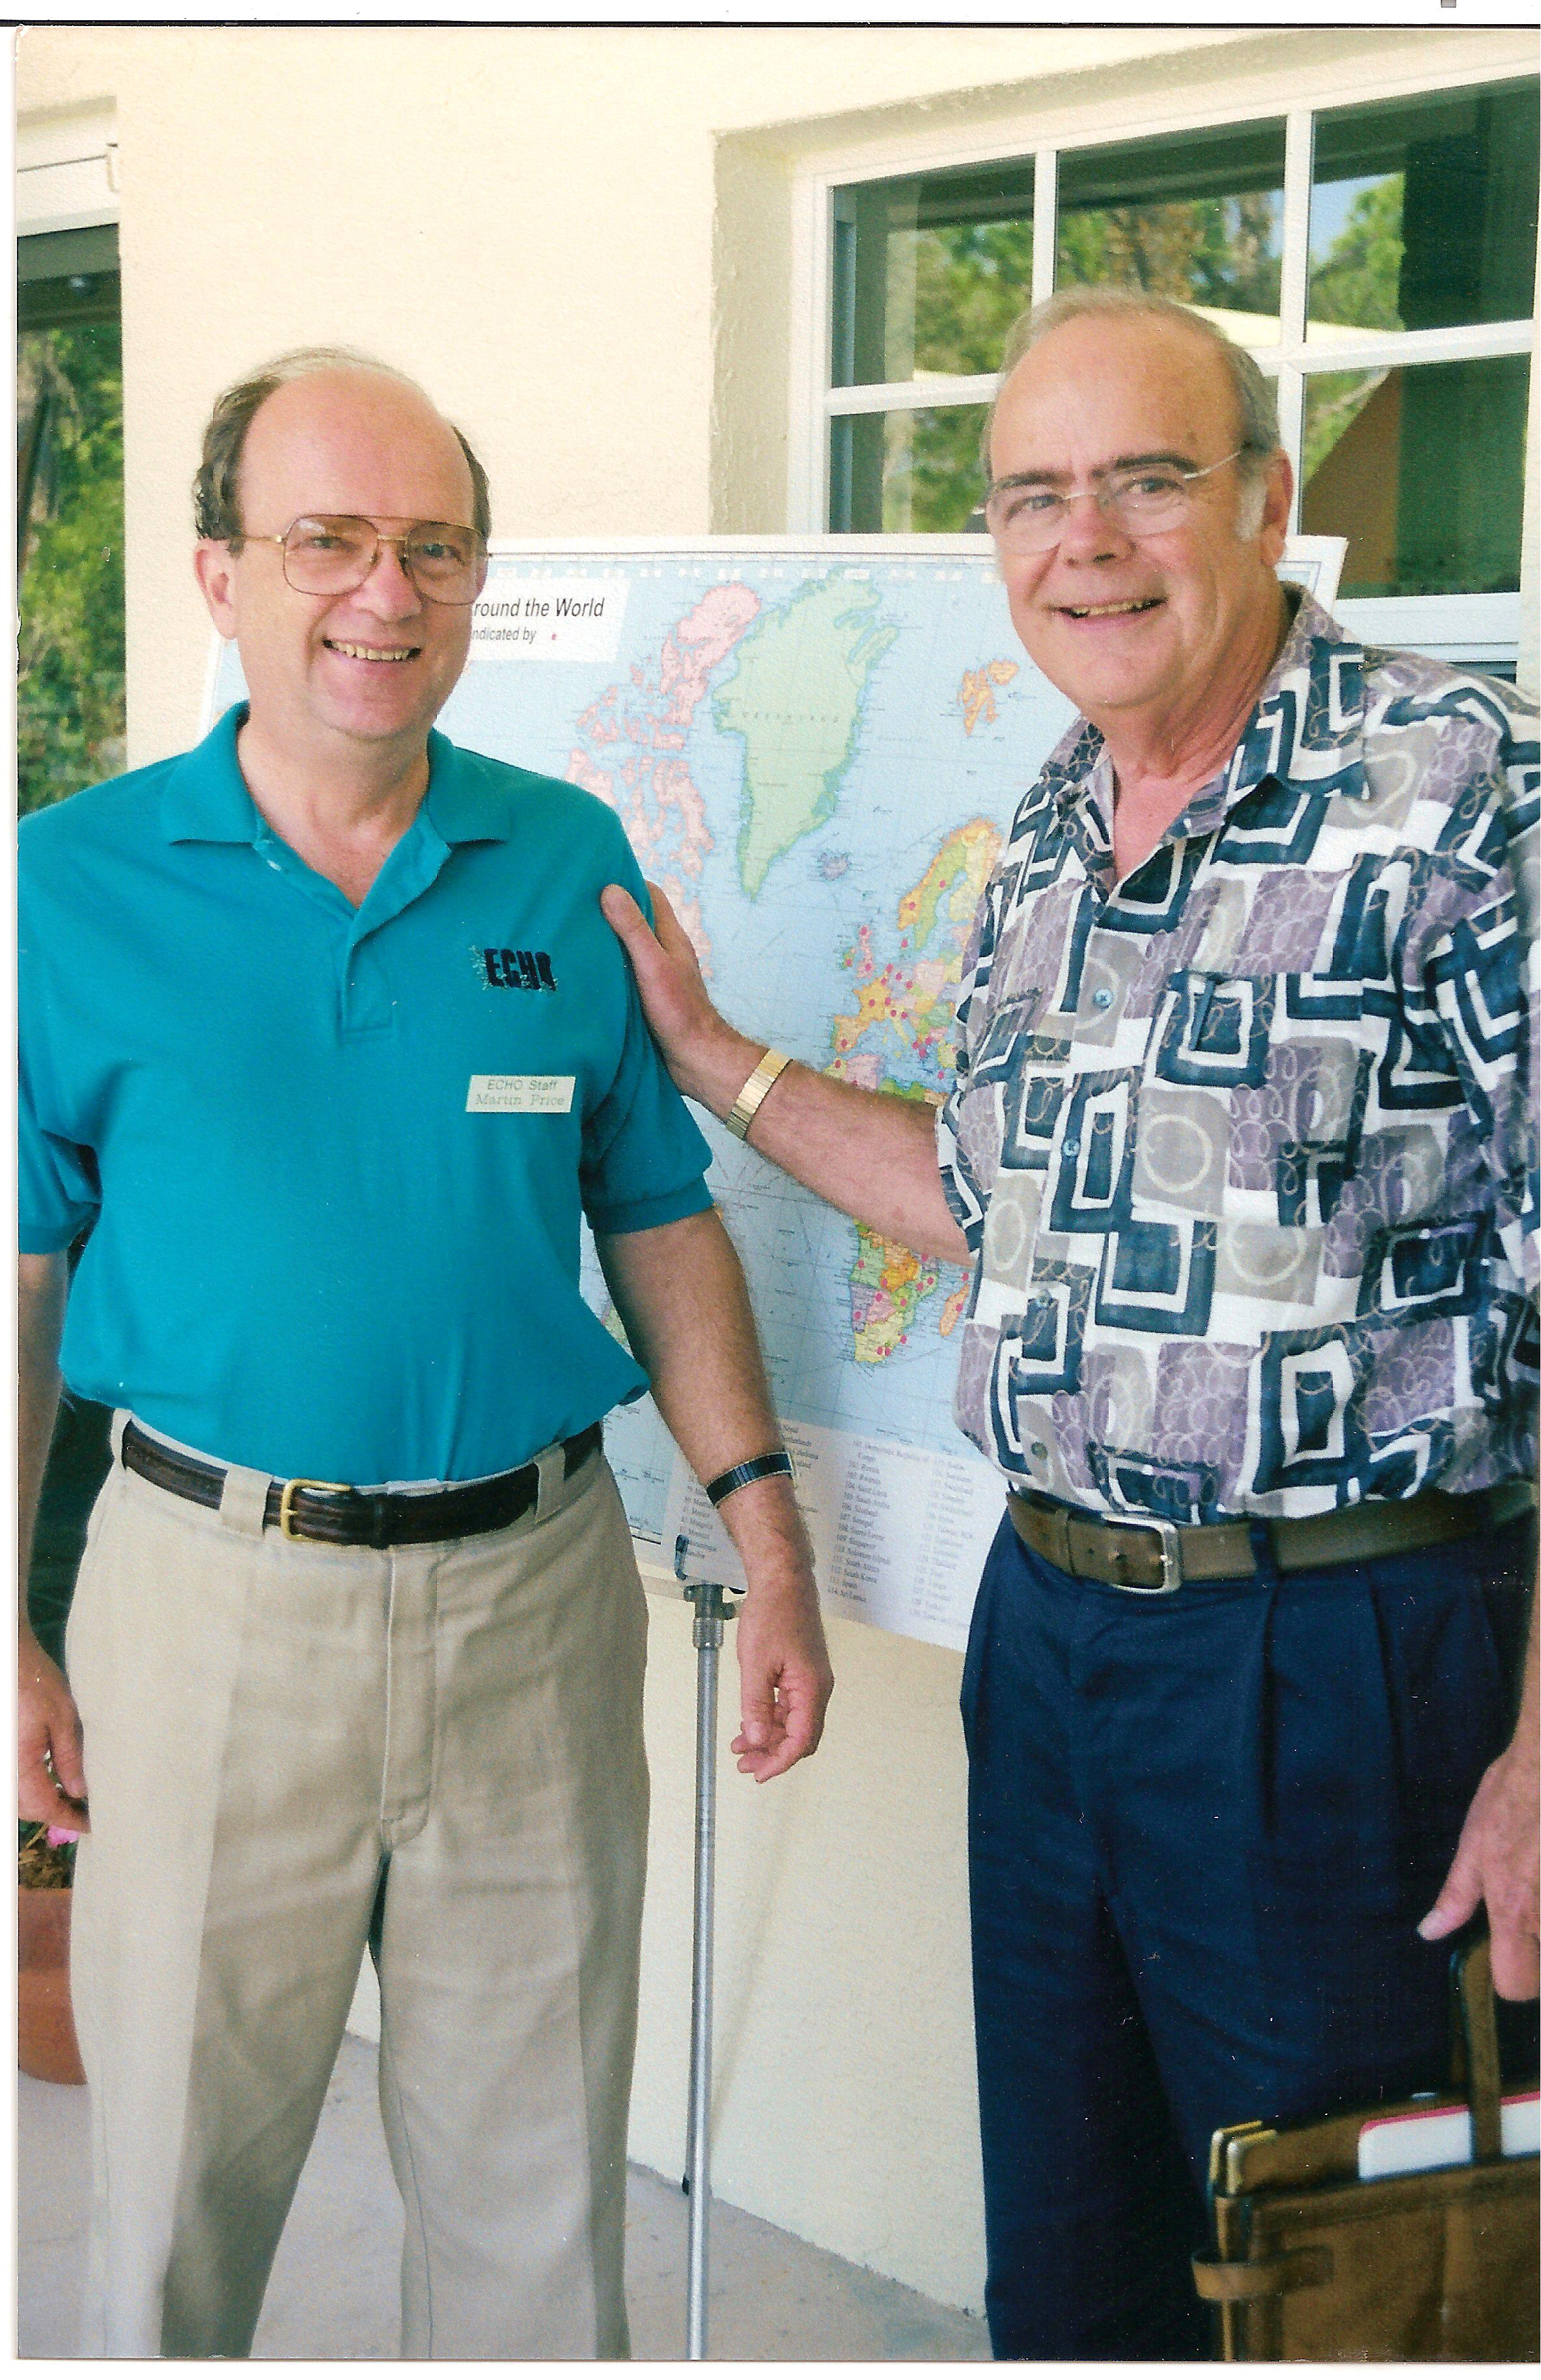 Dr. Martin Price, left, and Dick Dugger, right, at ECHO's 20th Anniversary in 2001.